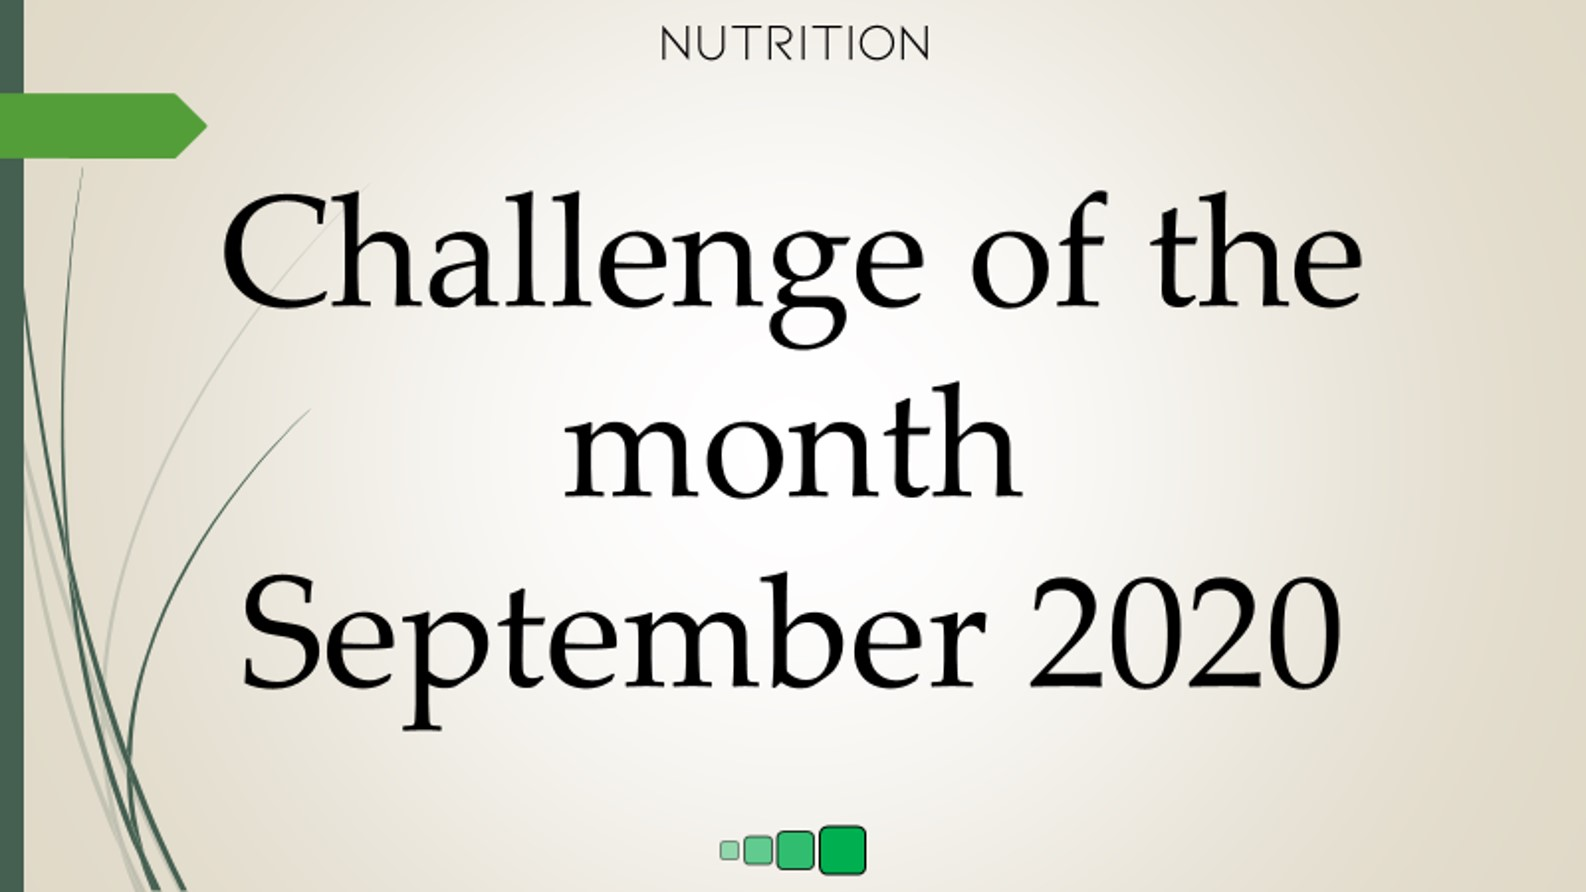 challenge of the month september 2020